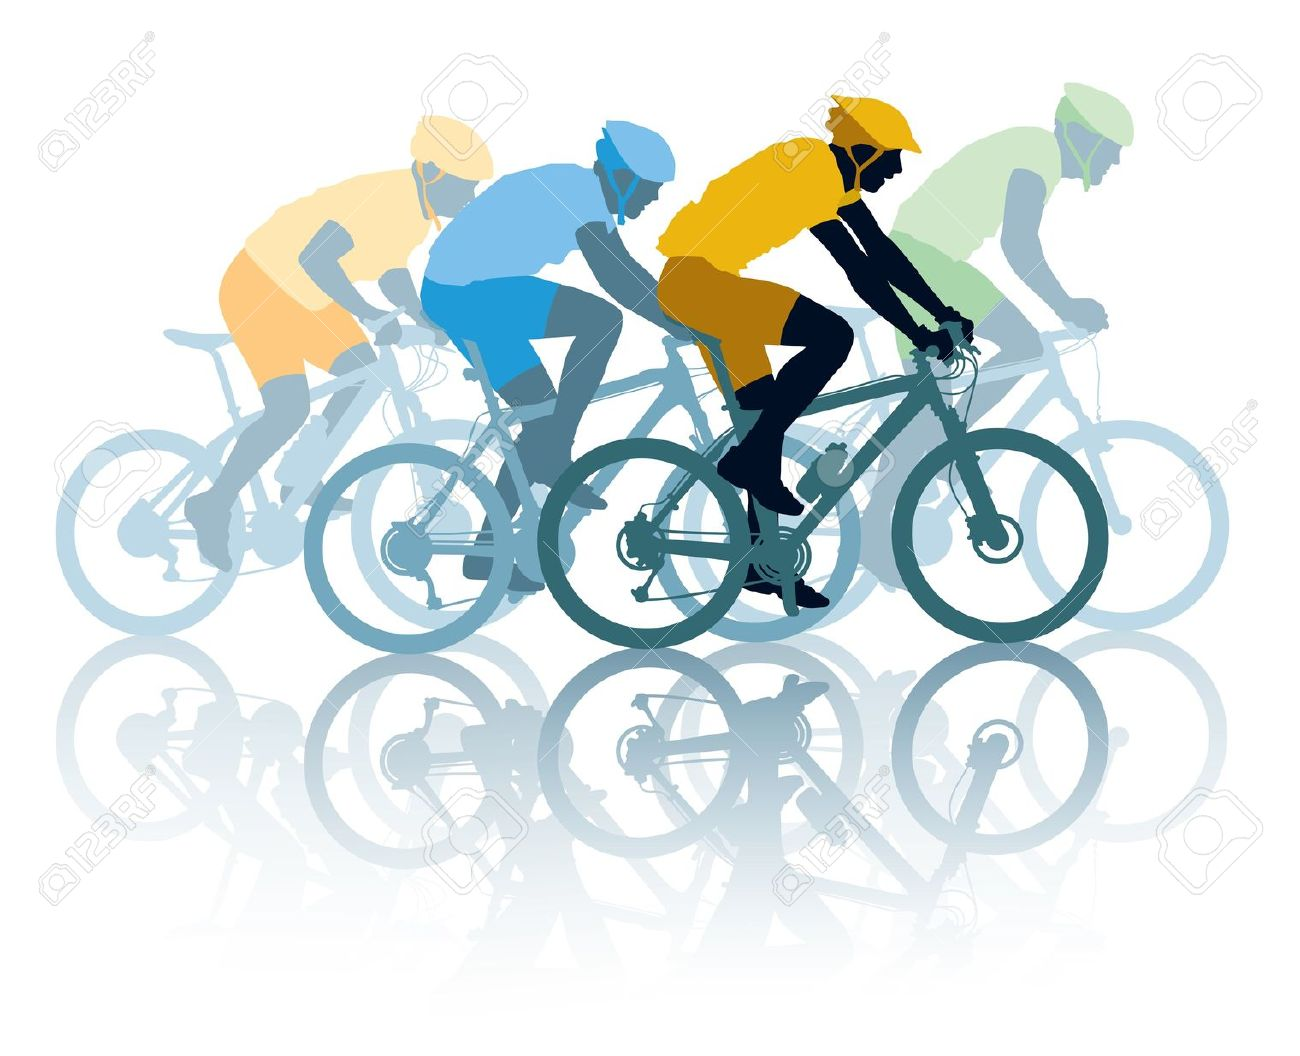 Racing cyclists clipart - Clipground